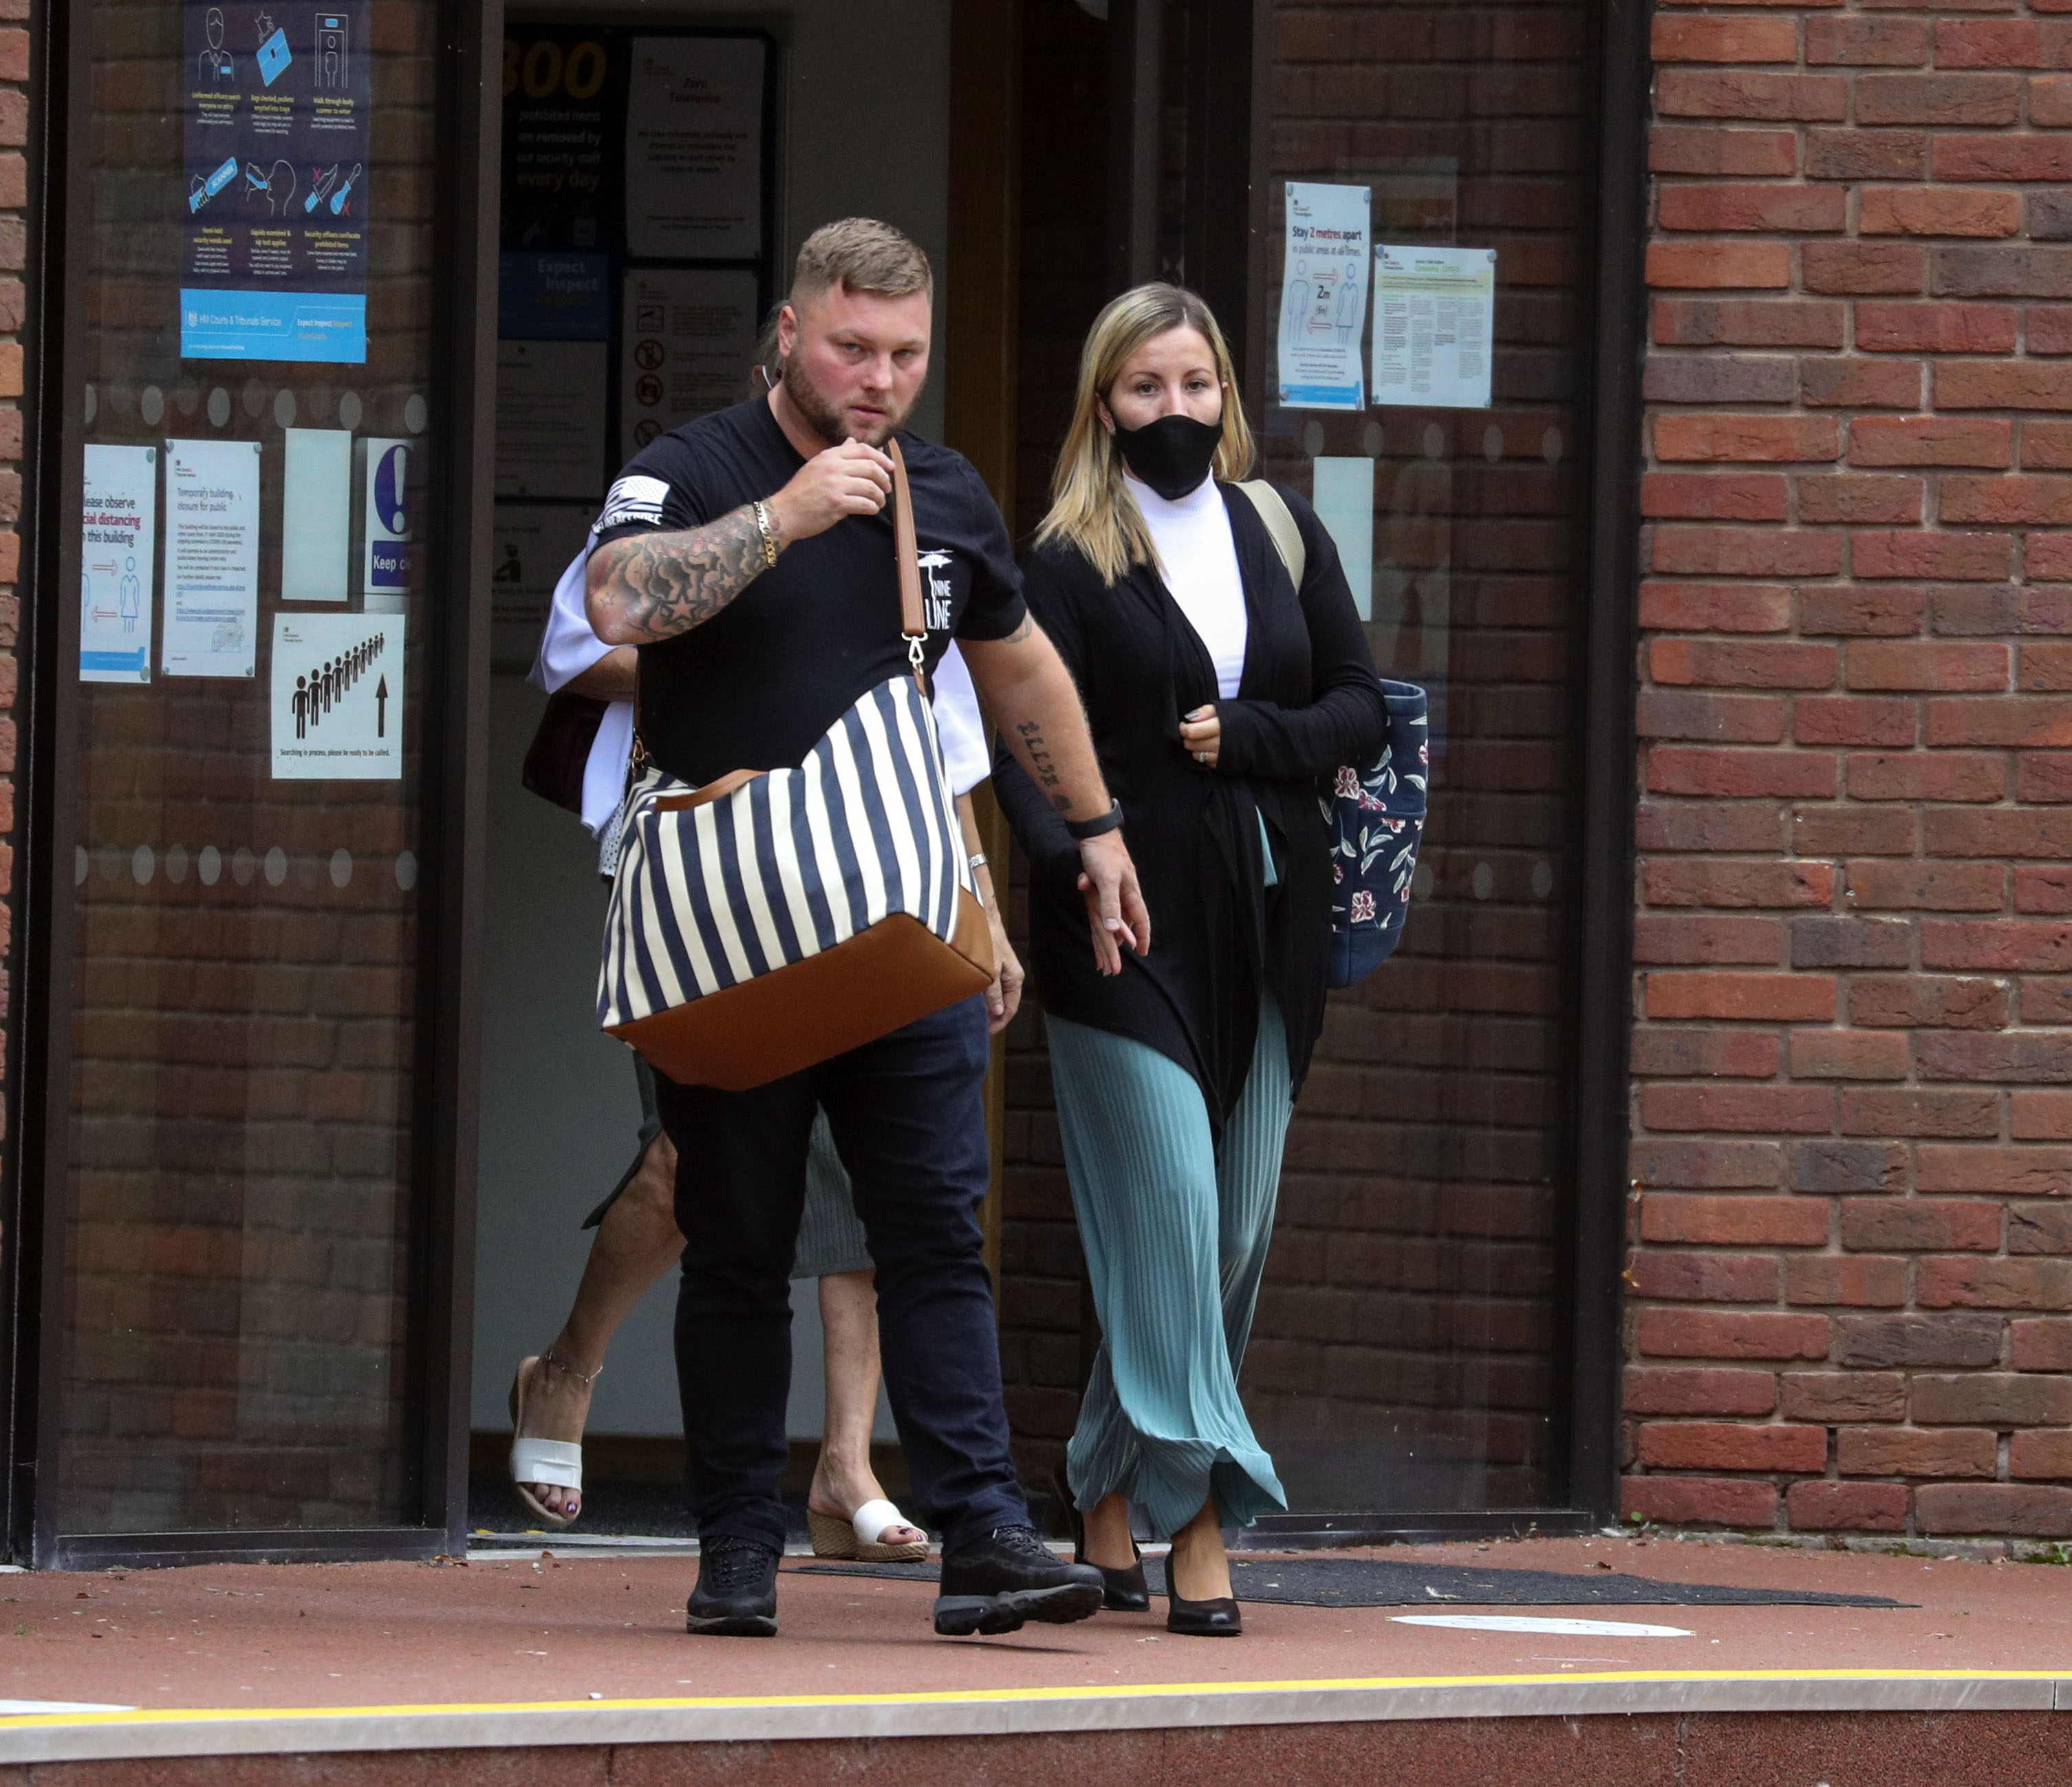 Teacher Kandice Barber, 35, leaves Aylesbury Crown Court, Buckinghamshire, with her husband Daniel, after being found guilty of two sex offence charges related to sending topless Snapchat pictures to a 15-year-old student. The jury were unable to reach verdicts on three more serious charges of causing or inciting a child aged under 16 to engage in a sexual act.